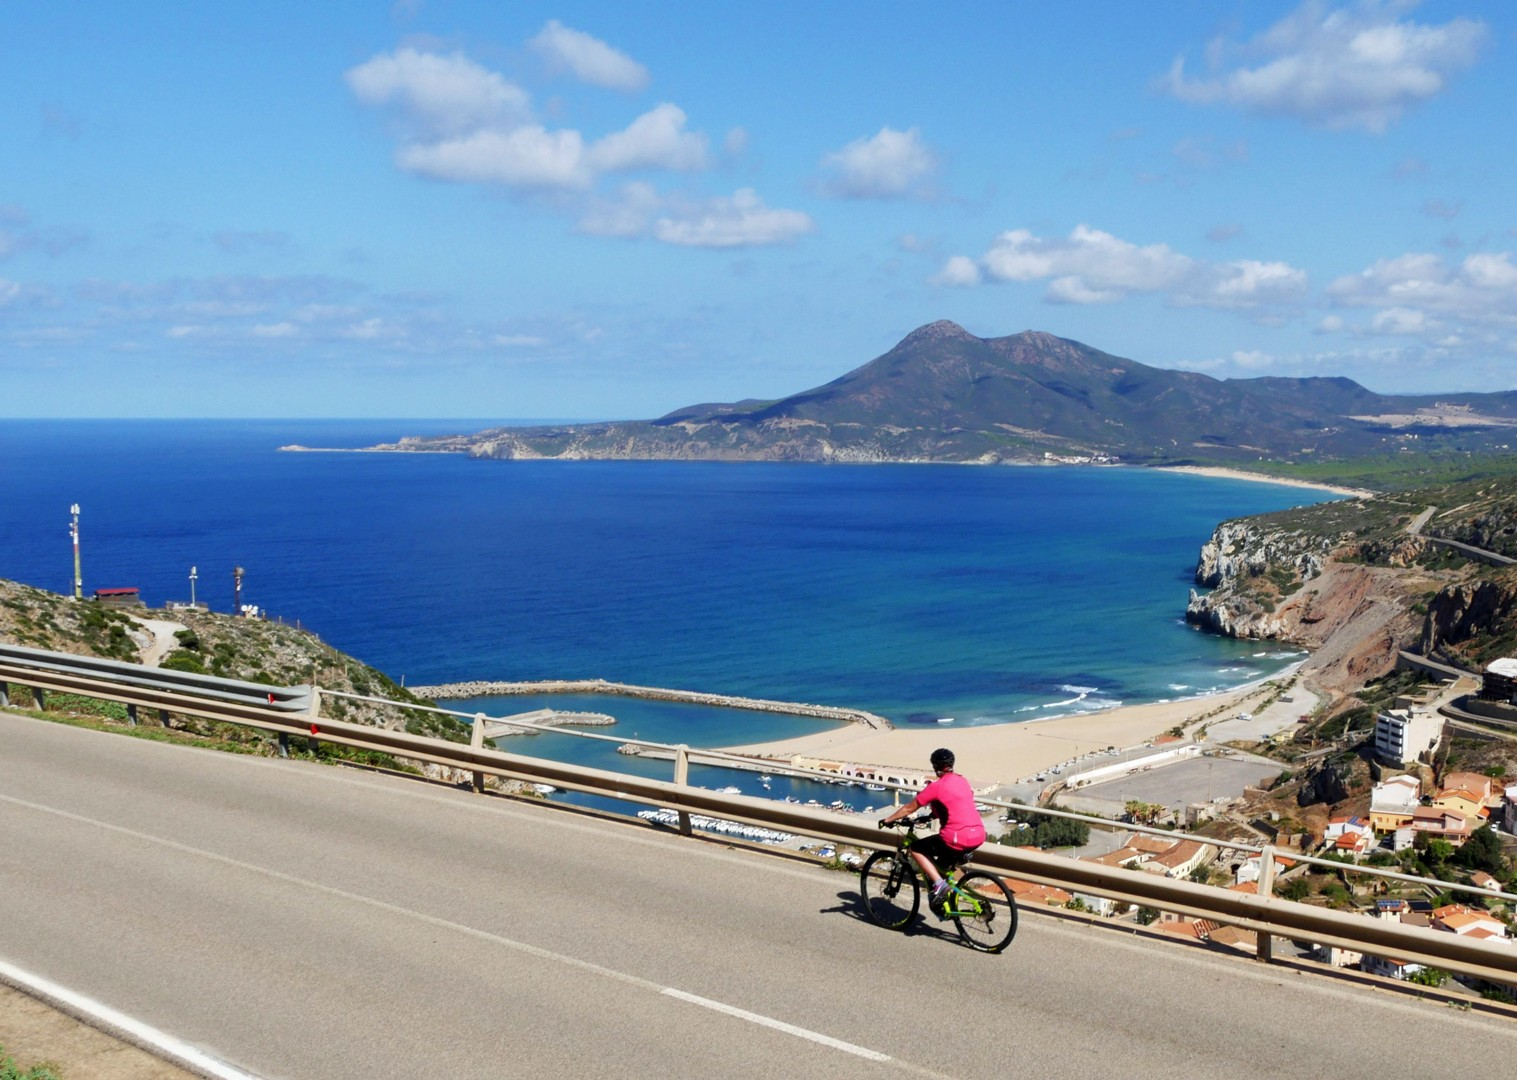 cycling-holiday-sardinia-islands.jpg - Italy - Sardinia - Island Flavours - Self-Guided Leisure Cycling Holiday - Leisure Cycling